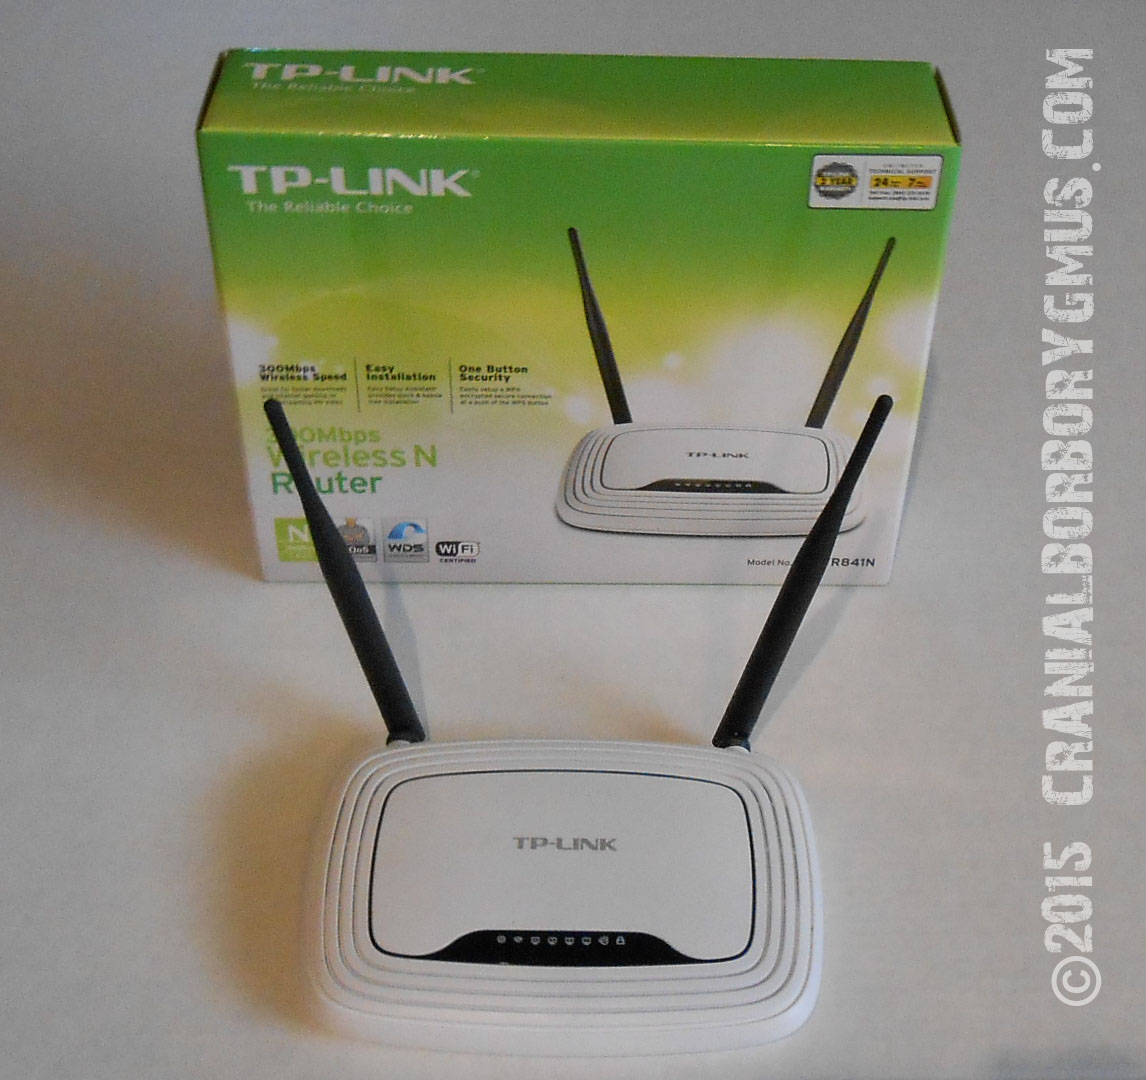 TP-LINK TL-WR841N wireless router review